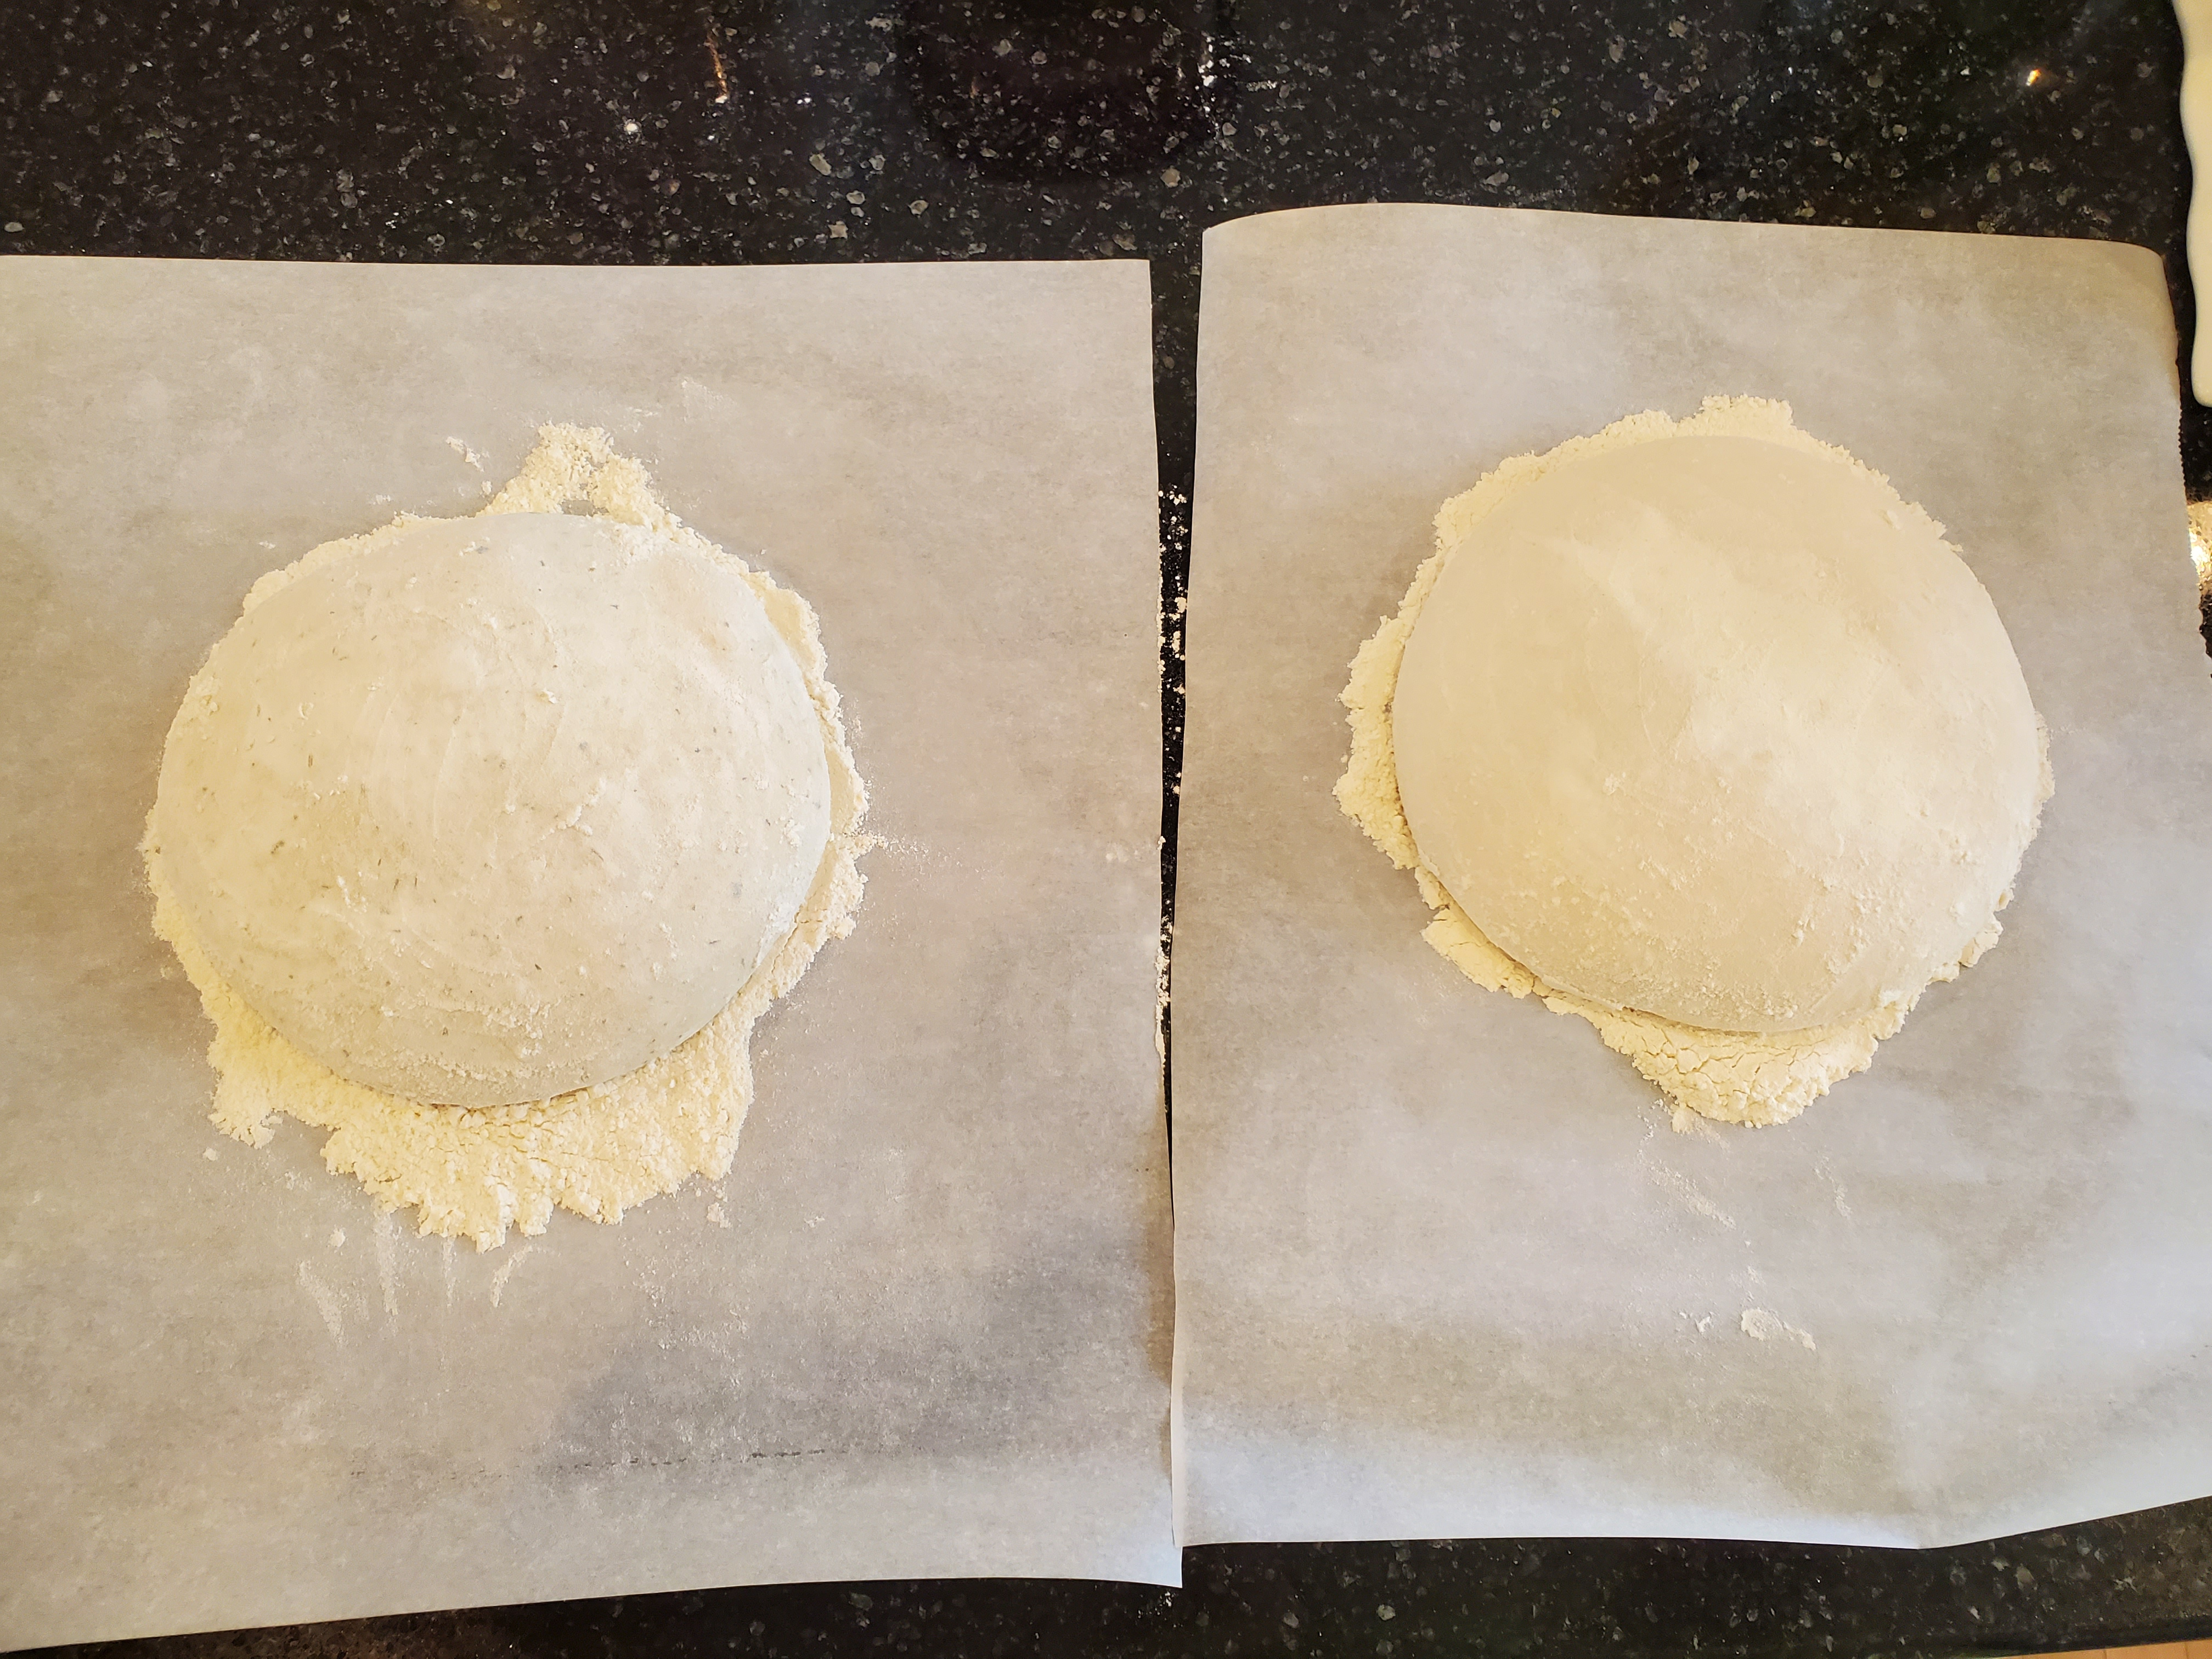 Two balls of sourdough rising on floured parchment paper on a black granite coutertop.